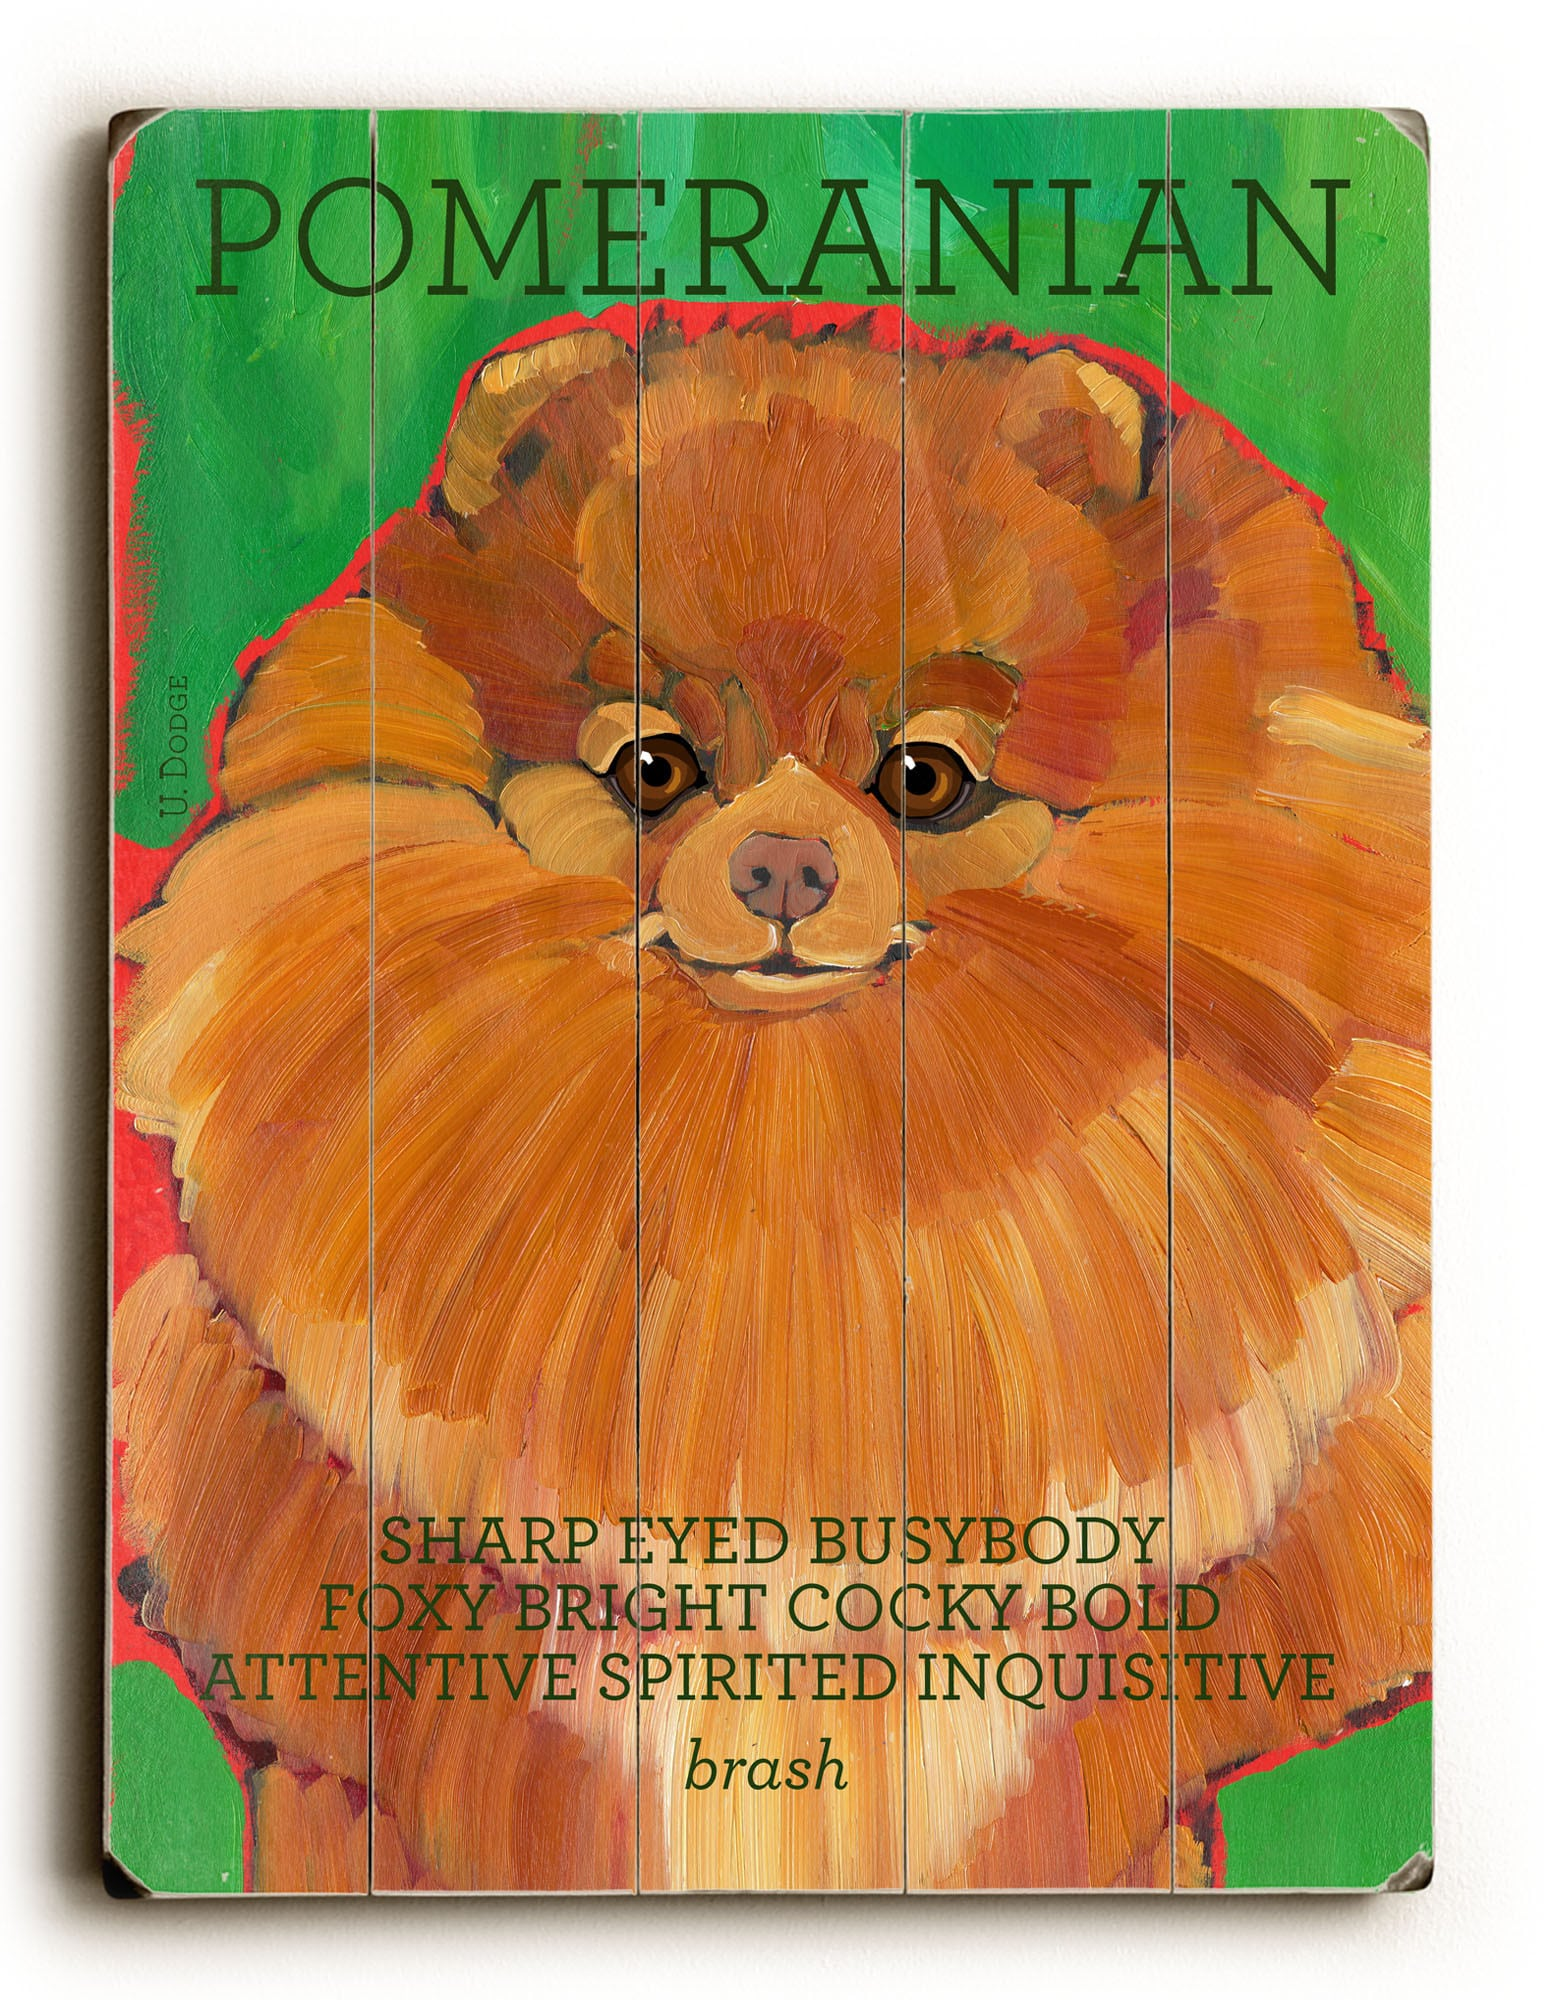 Pomeranian - Dog Picture, Dog Print, Dog Art. 'Every Dog is a Lion at Home.' - Henry George Bohn (famous dog quotes). Wall Art and Wooden Signs with Dog Pictures and Dog Quotes. Features the Pomeranian dog breed.